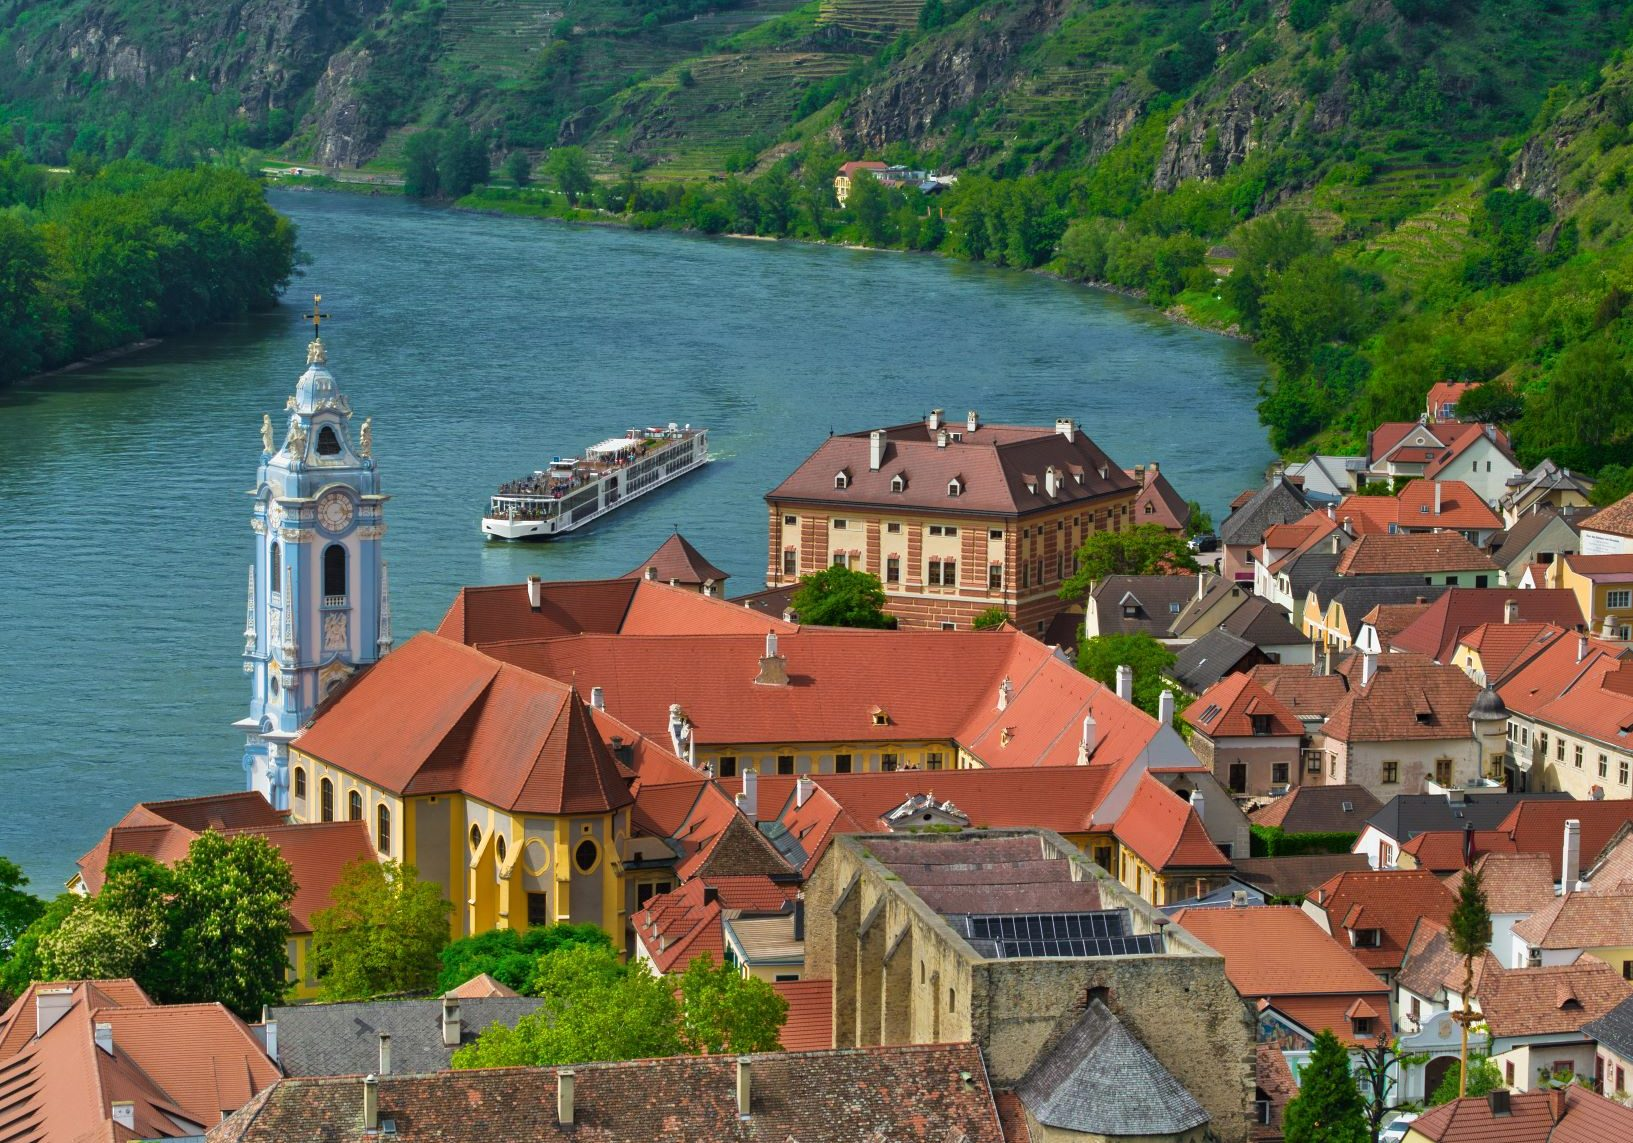 River cruise along Danube river